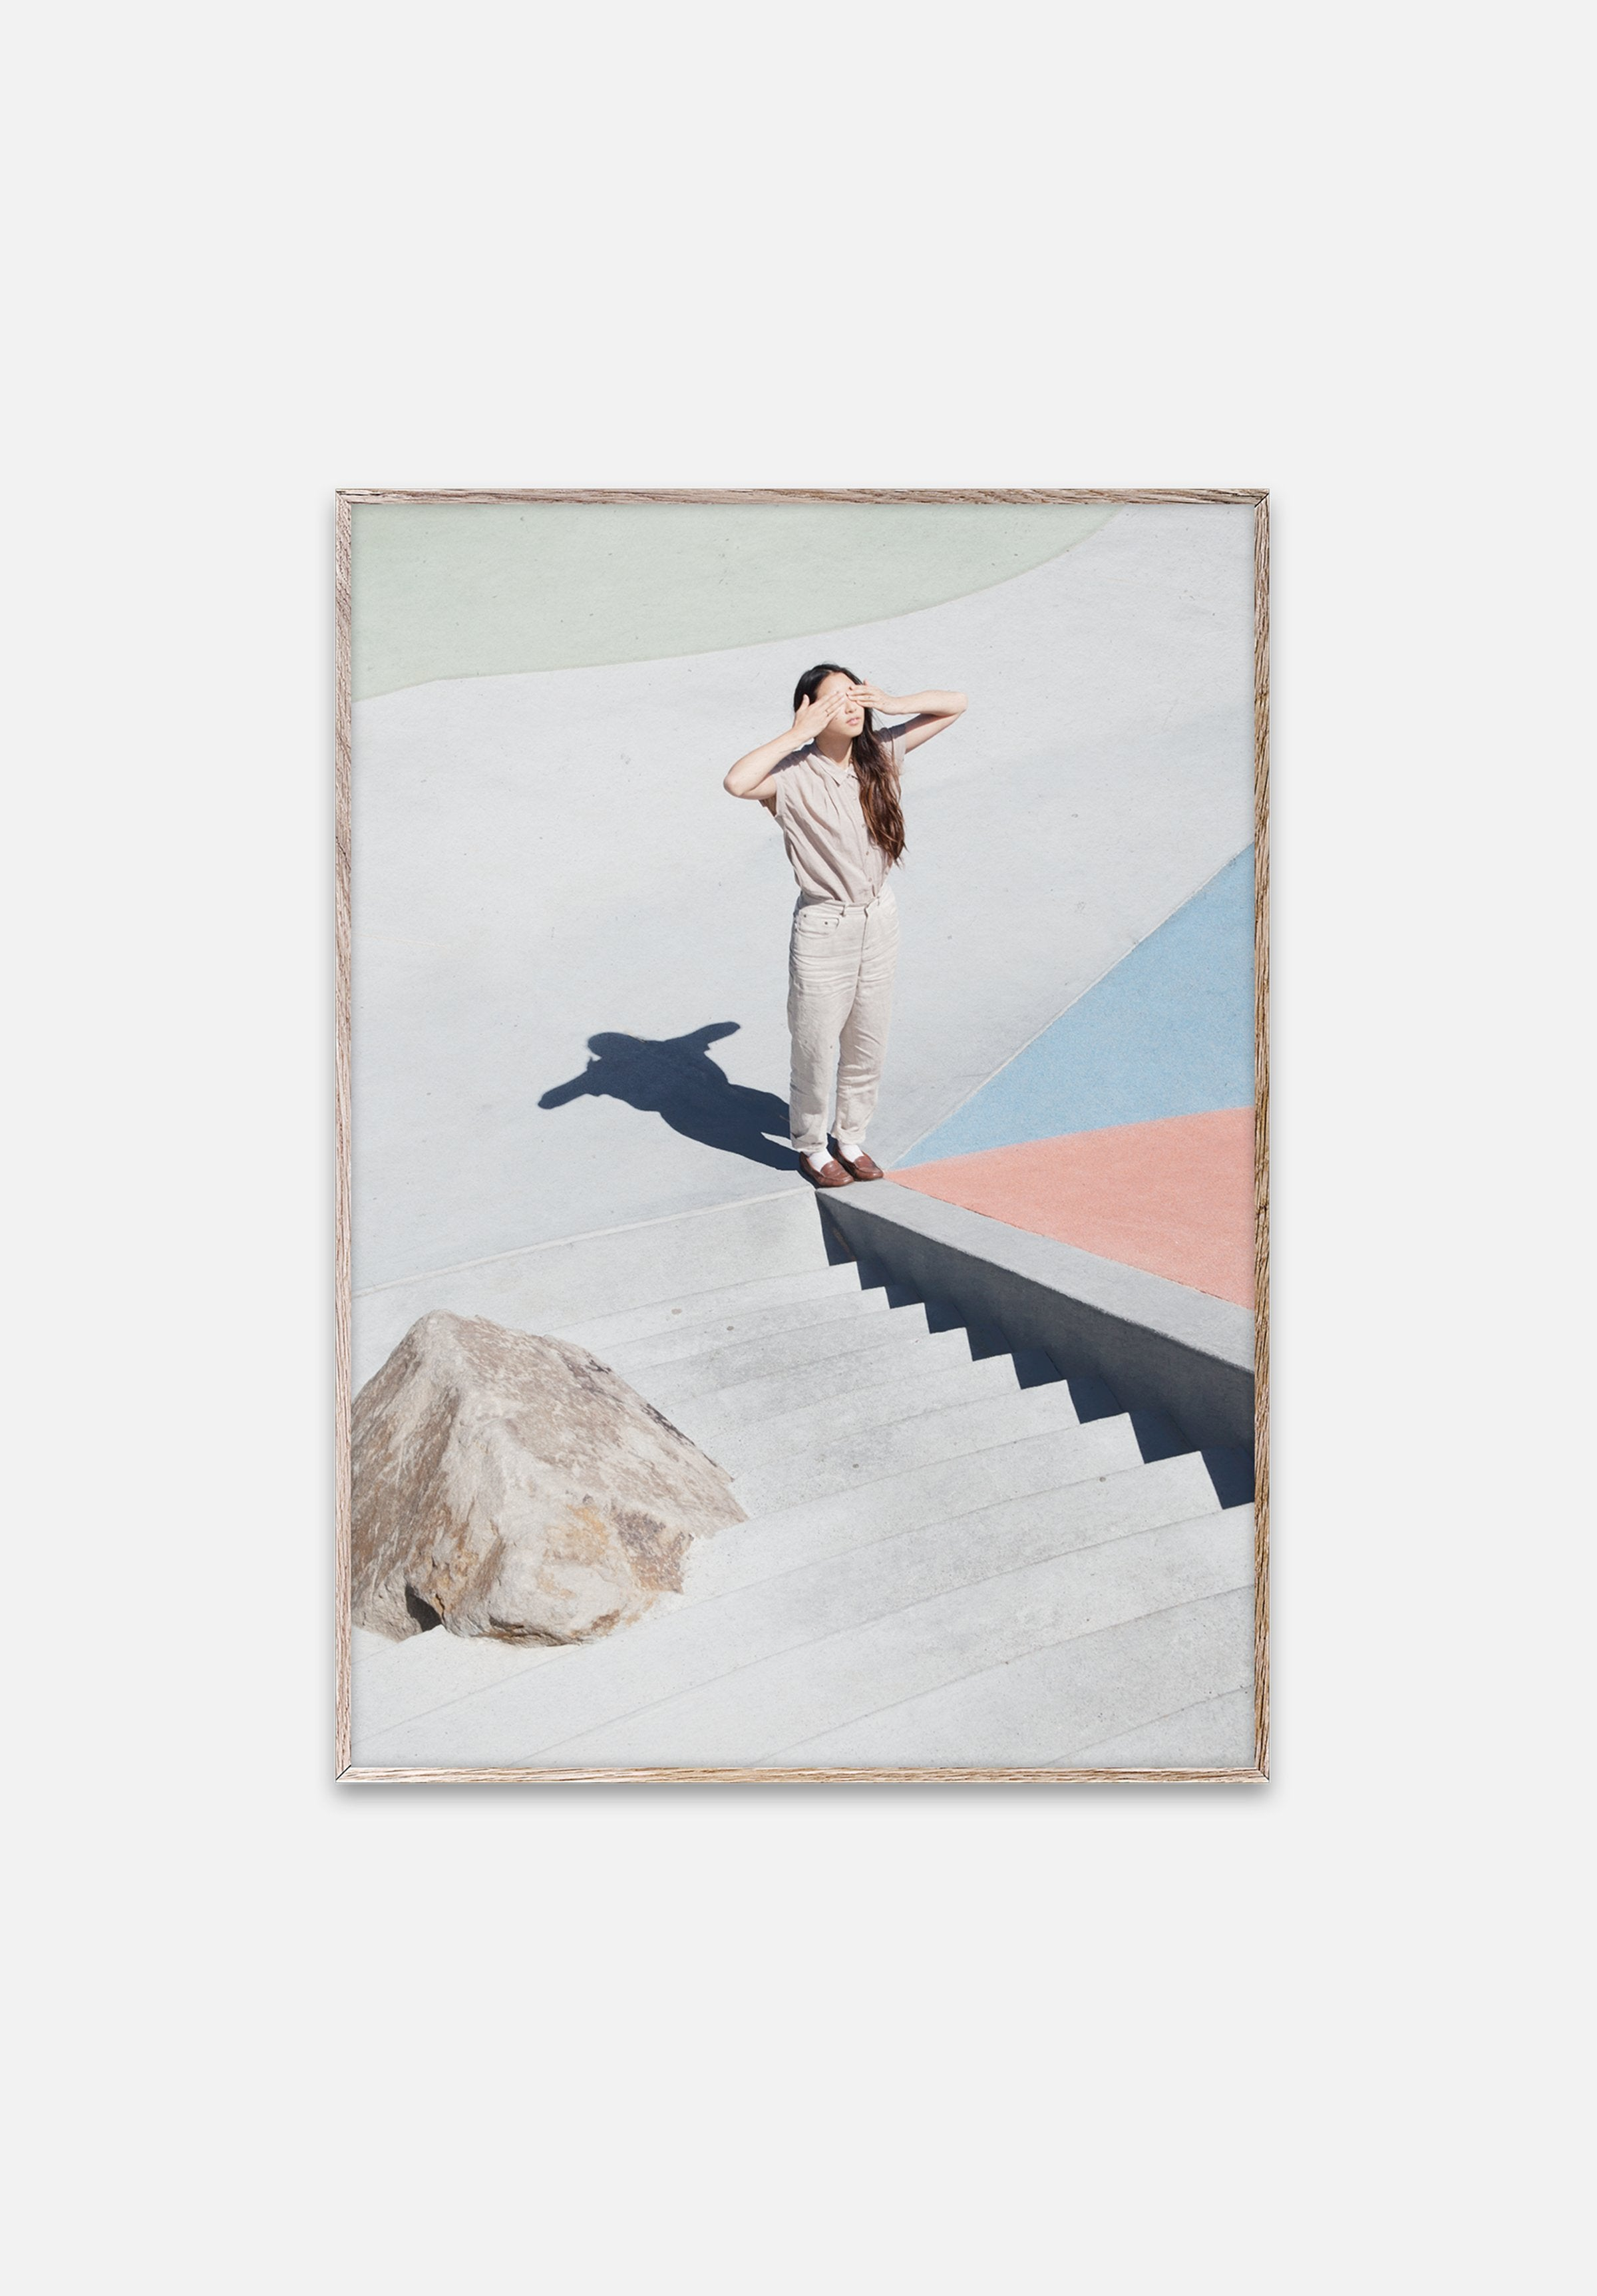 Playground 02-Maia Flore-Paper Collective-30x40cm-Average